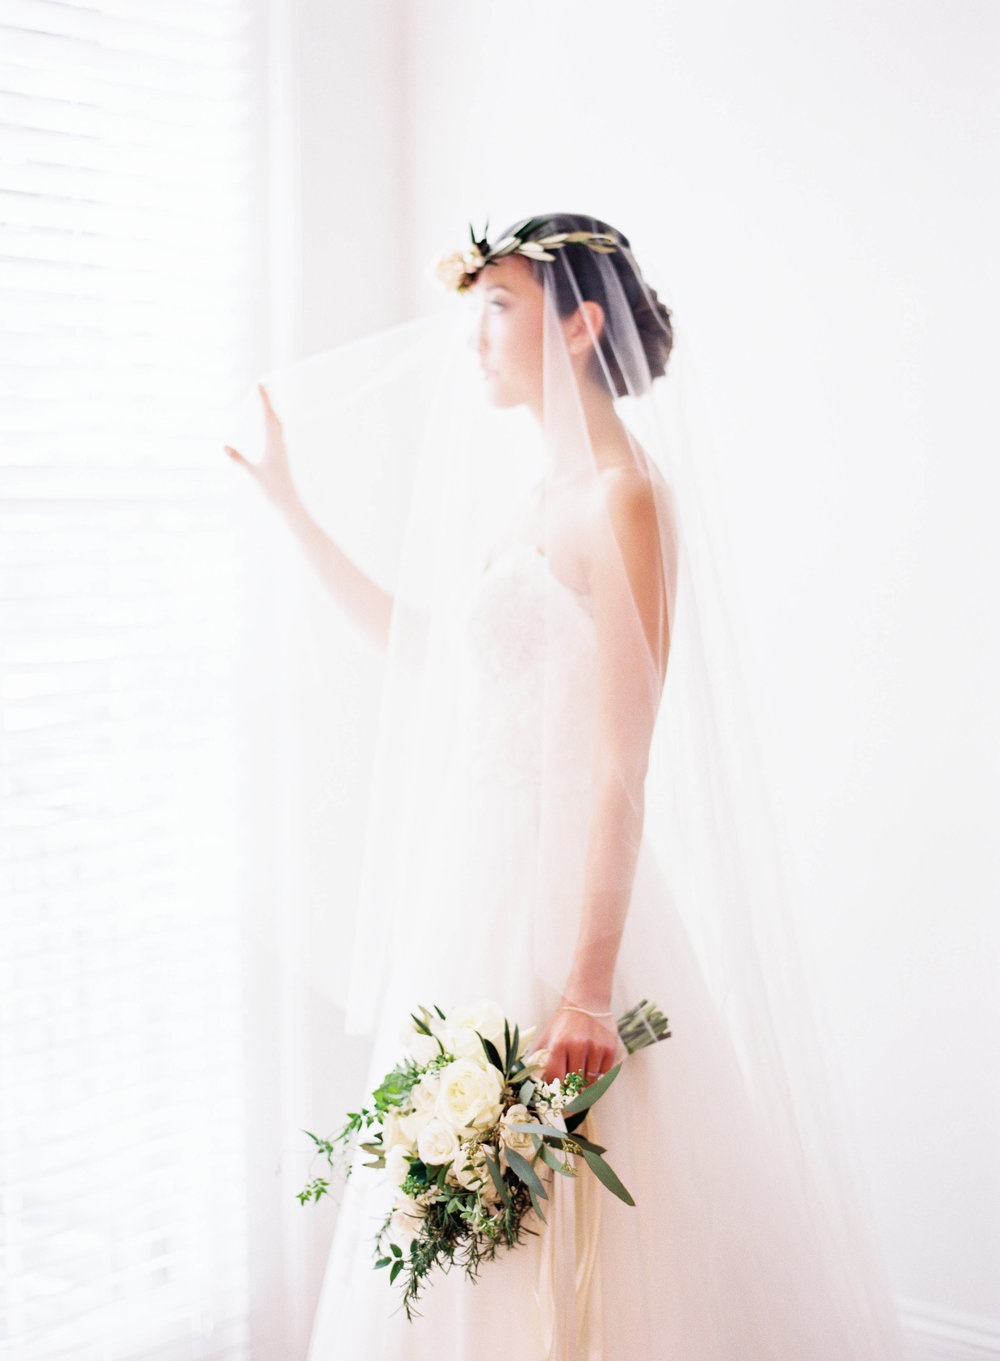 Sapphire Events | Marissa Lambert Photography | Il Mercato | Bridal Portrait Inspiration | Flower Crown | Olive Branch Inspiration | Garden Wedding | Long Veil | Wedding Planning Tips | What to do after the ring | Engagement Inspiration | Wedding Planning Inspiration | Best Wedding Planner in New Orleans | Essential Engagement Tips